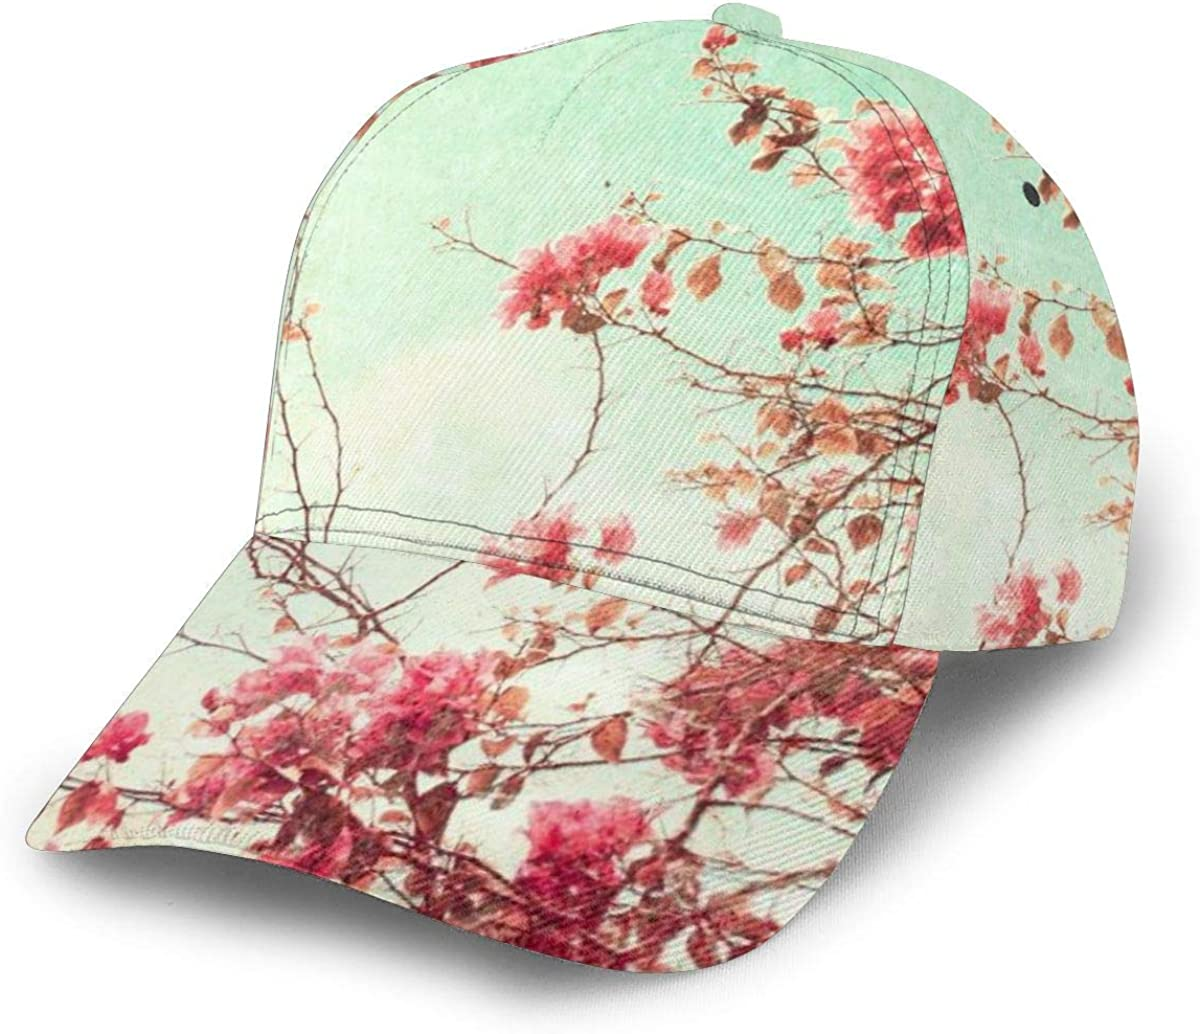 Flowers Unisex Unisex Curved Visor Hat Casual Hats Curved Adult Flat Cap Outdoor